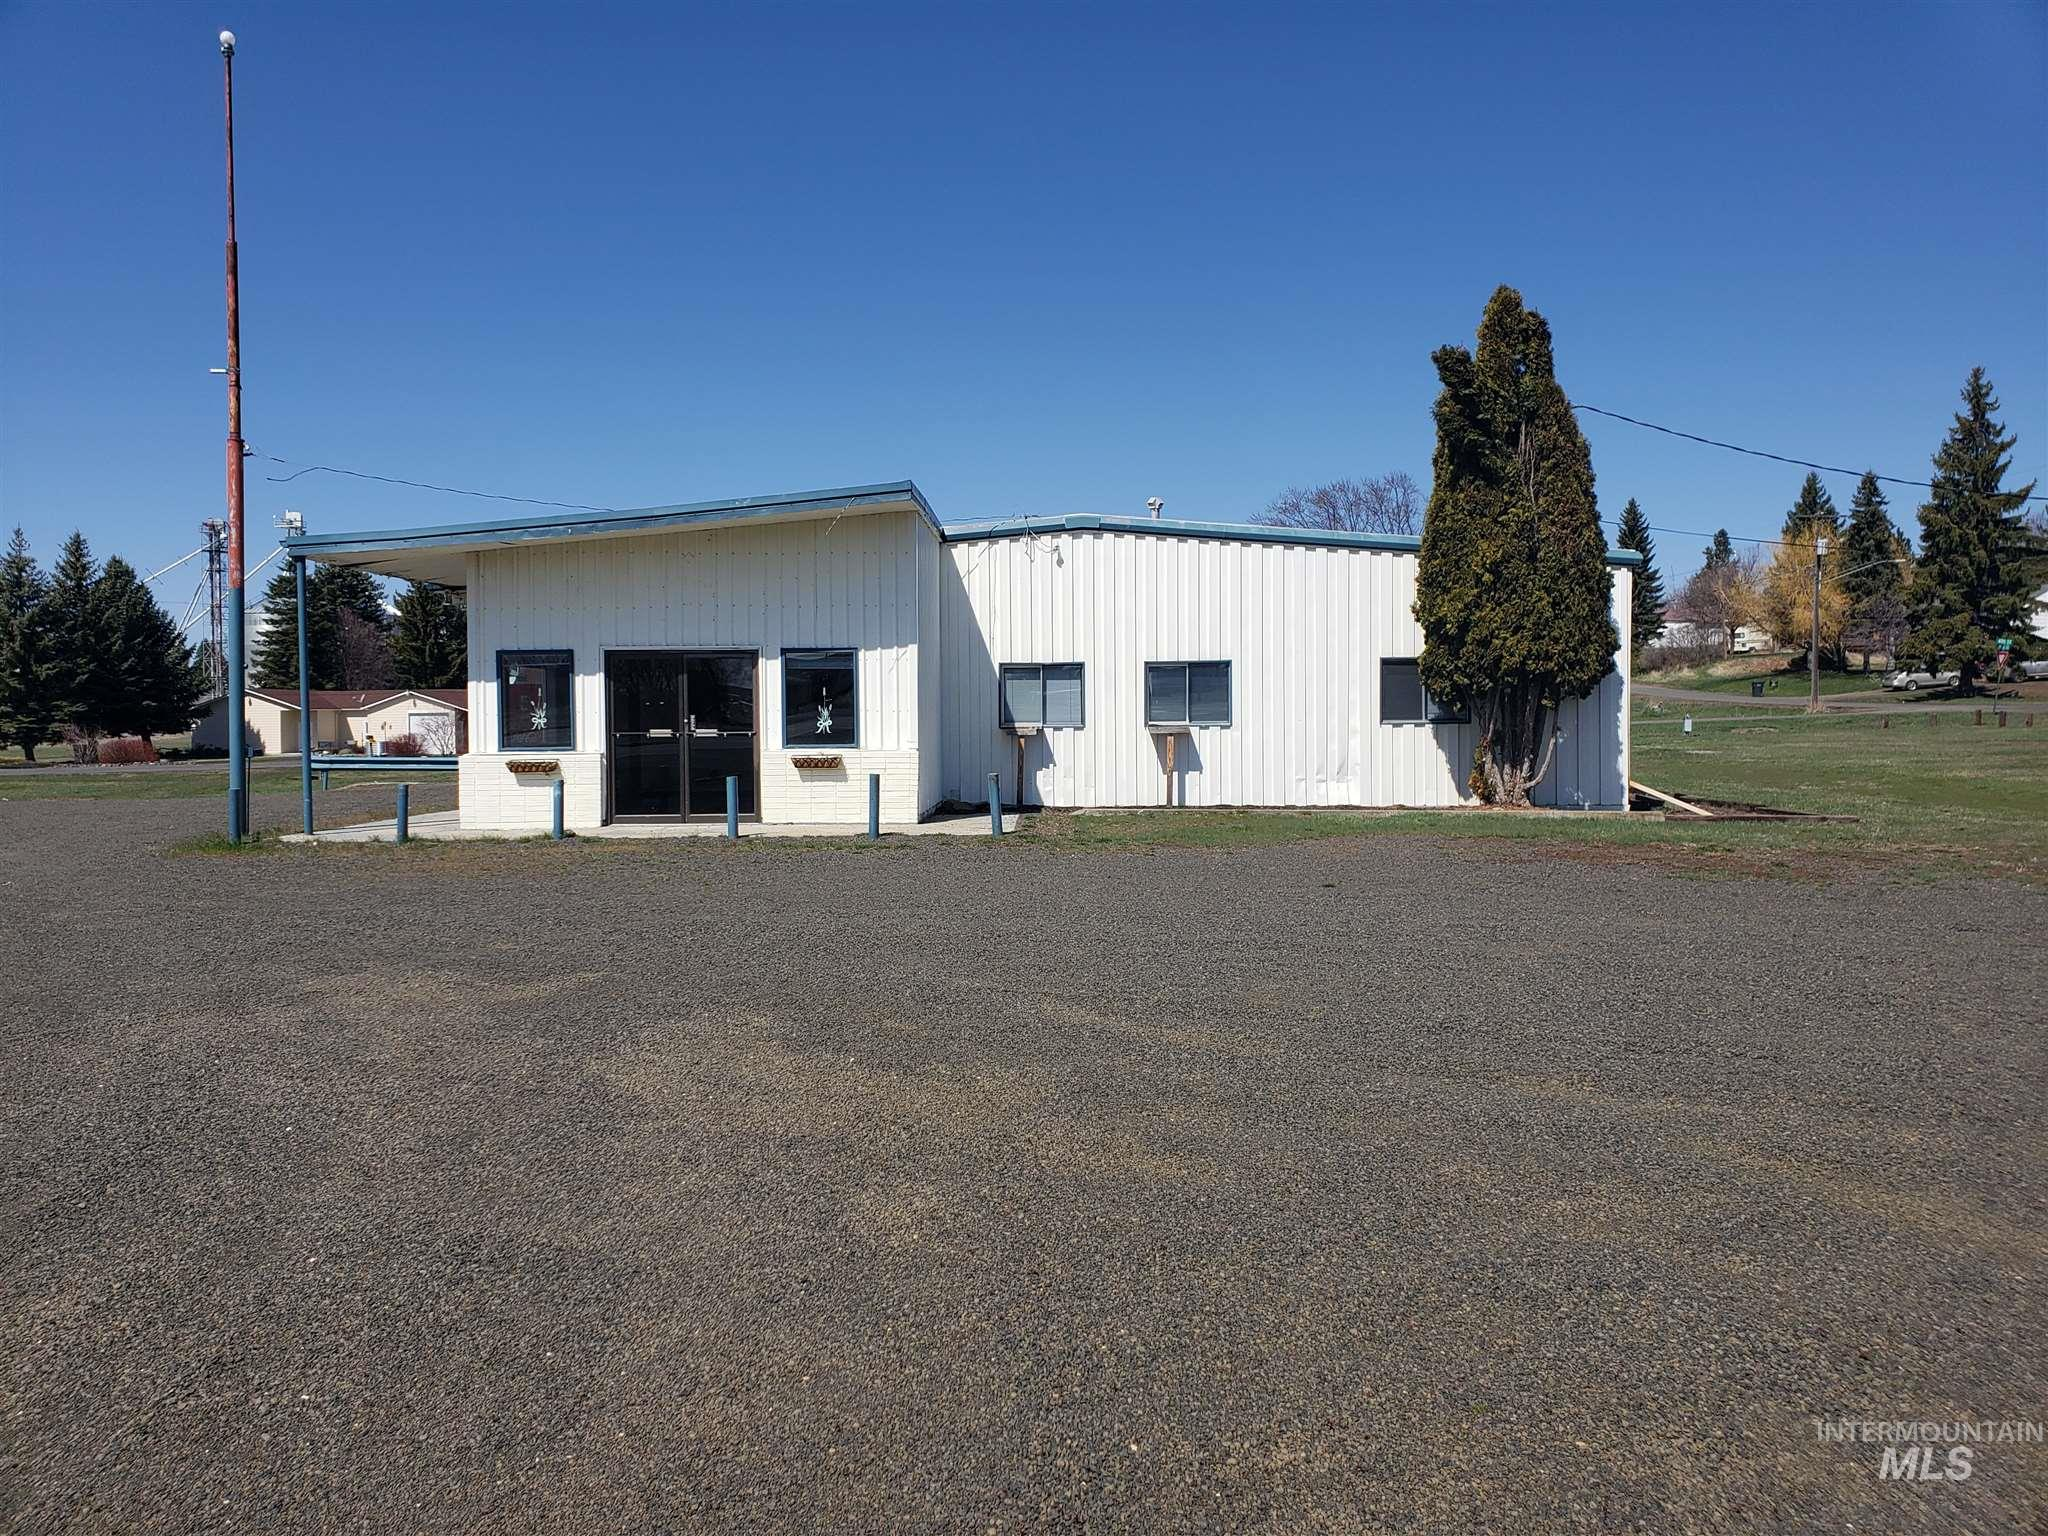 401 E Main St, Craigmont, Idaho 83523, Business/Commercial For Sale, Price $125,000, 98776223